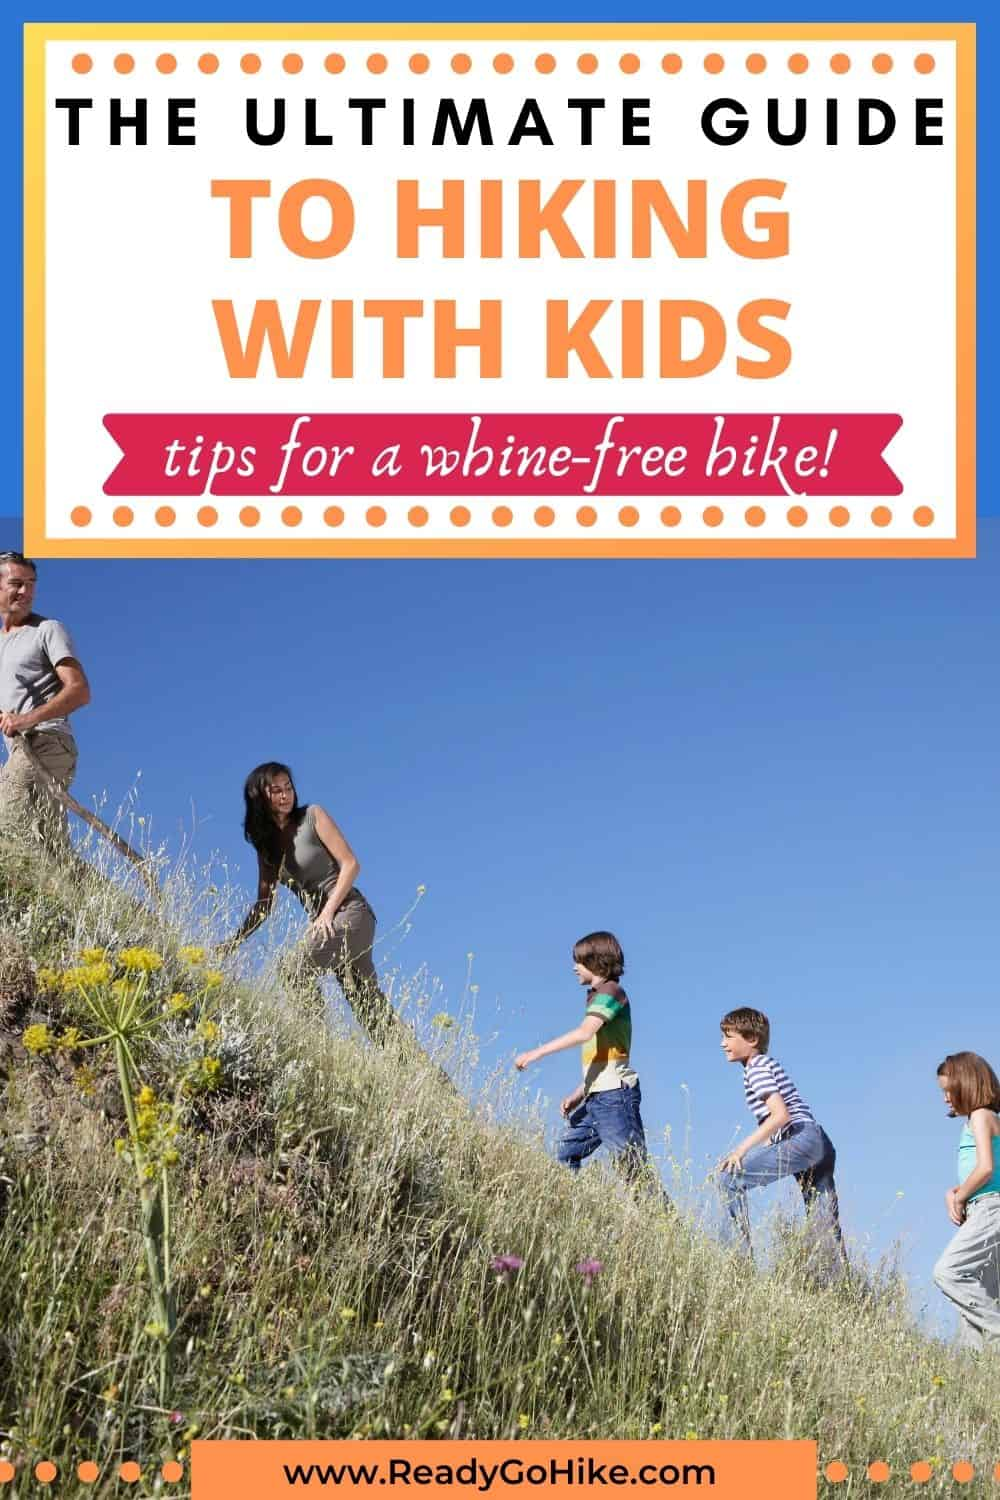 Family hiking up hill with text overlay The Ultimate Guide to Hiking With Kids